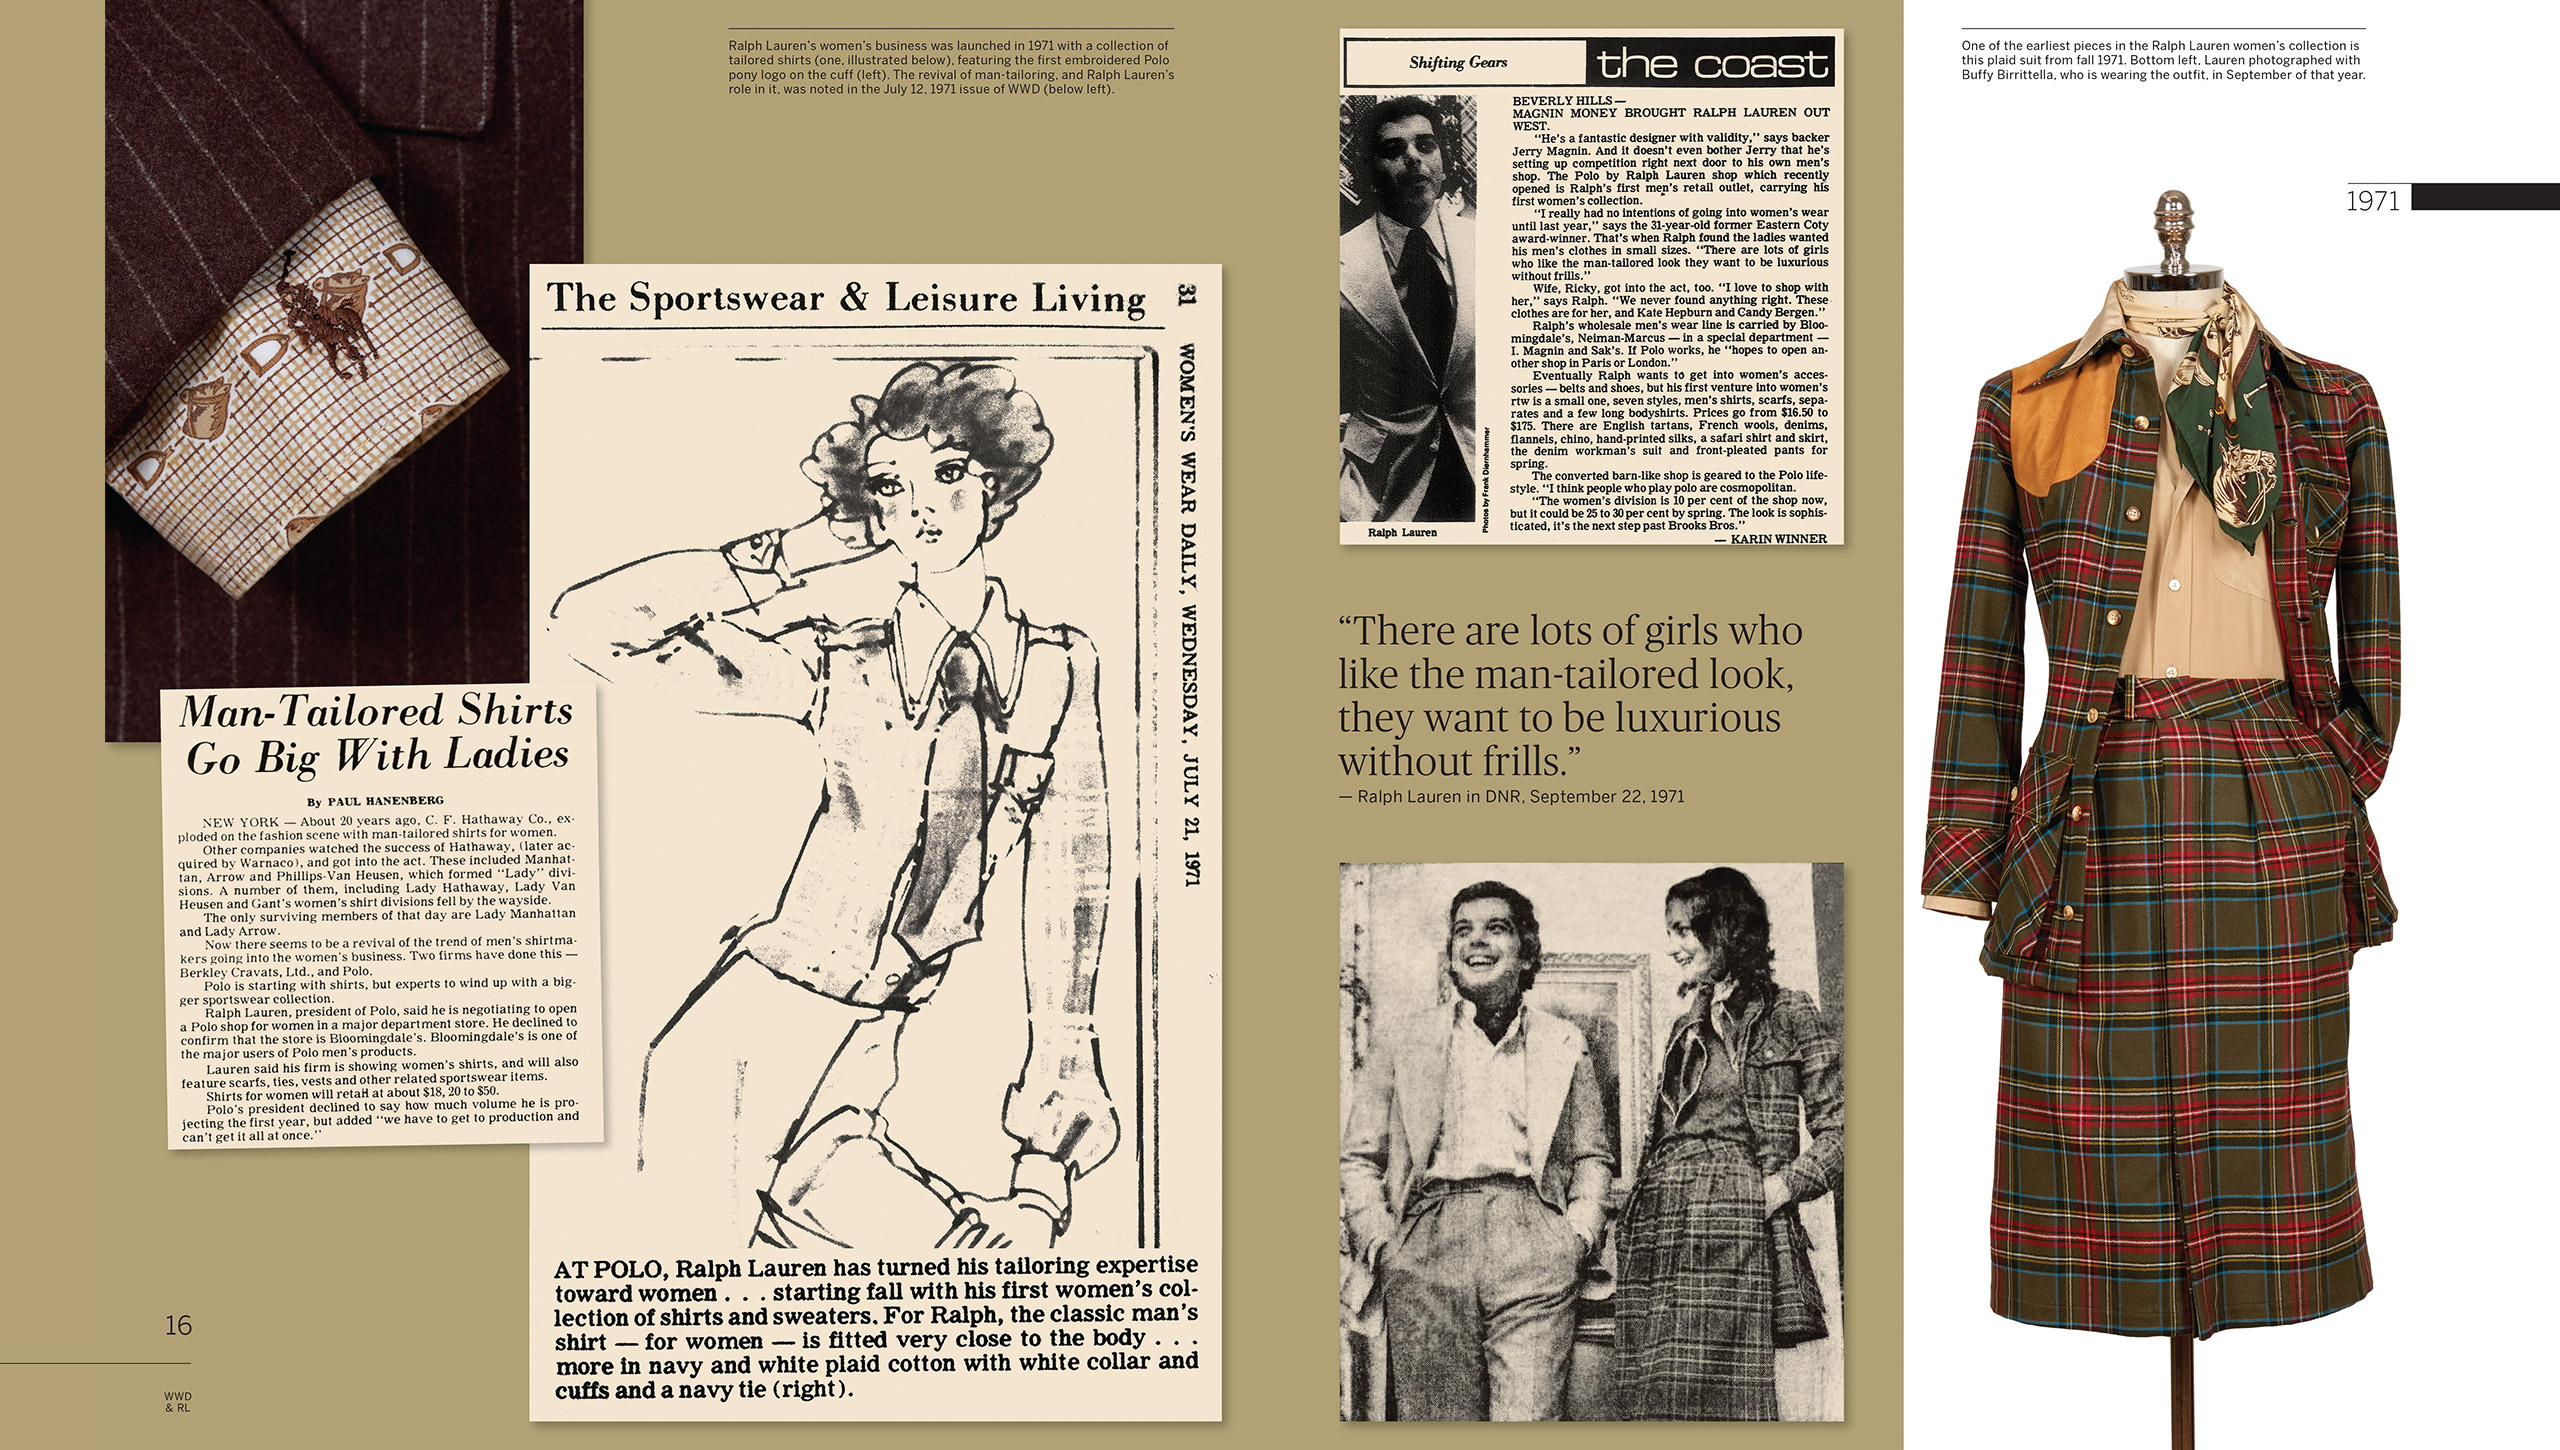 "1971: With Birrittella on board, Mr. Lauren launches with first line of womenswear in the fall. Taking cues from men's tailoring, the closely fitted button-down shirts, tartan skirt suits, and sweaters bring the Ralph Lauren look to a whole new client base. ""They want to be luxurious without frills,"" Mr. Lauren says of women who gravitate toward his menswear-inspired aesthetic. Meanwhile, Mr. Lauren's vision for a retail concept comes to fruition with the opening of the first stand-alone Polo by Ralph Lauren shop on Beverly Hills's storied Rodeo Drive."